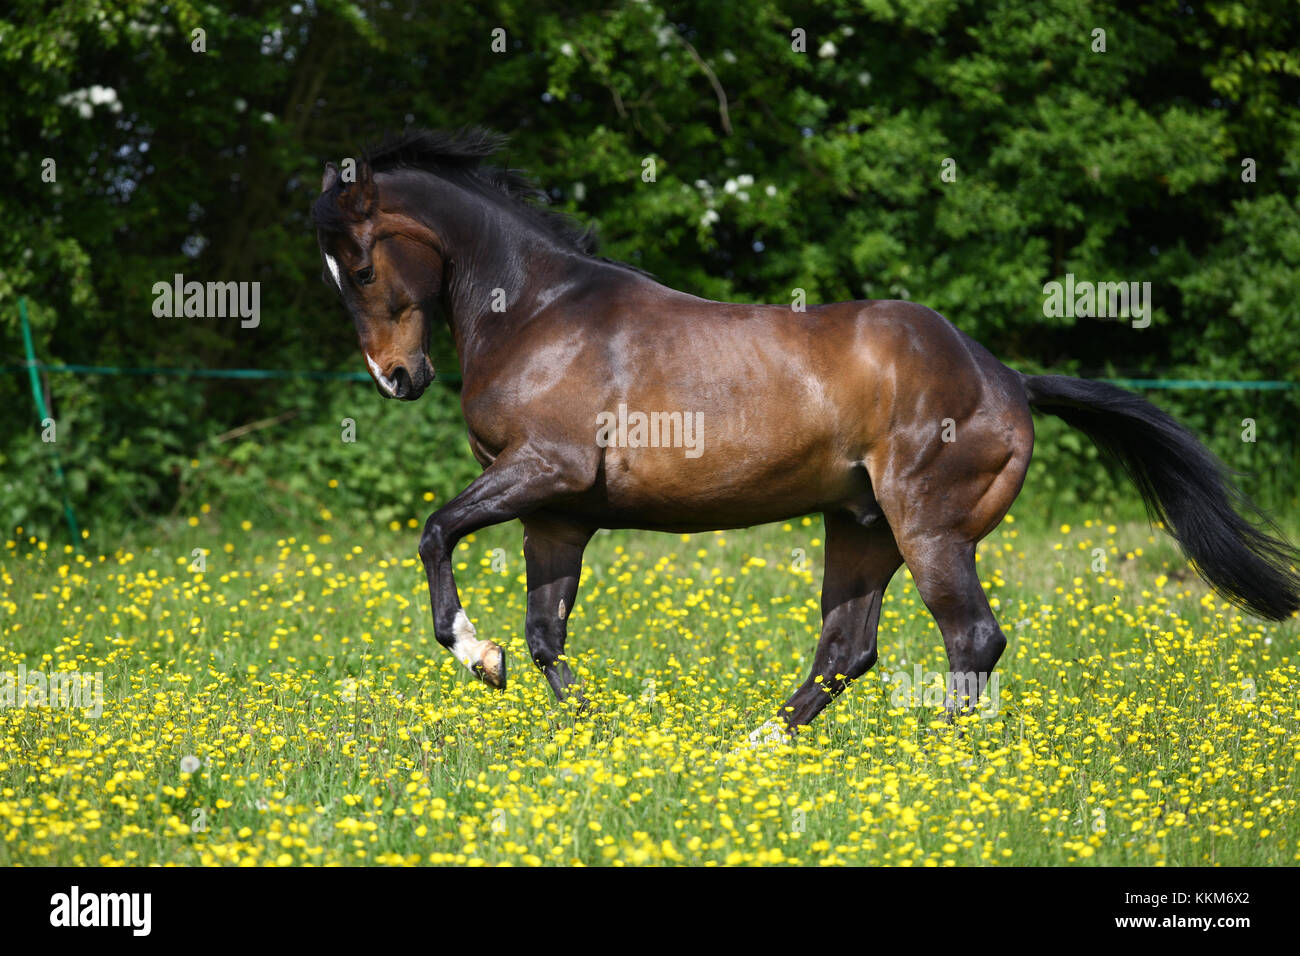 Hanoverian Stock Photo